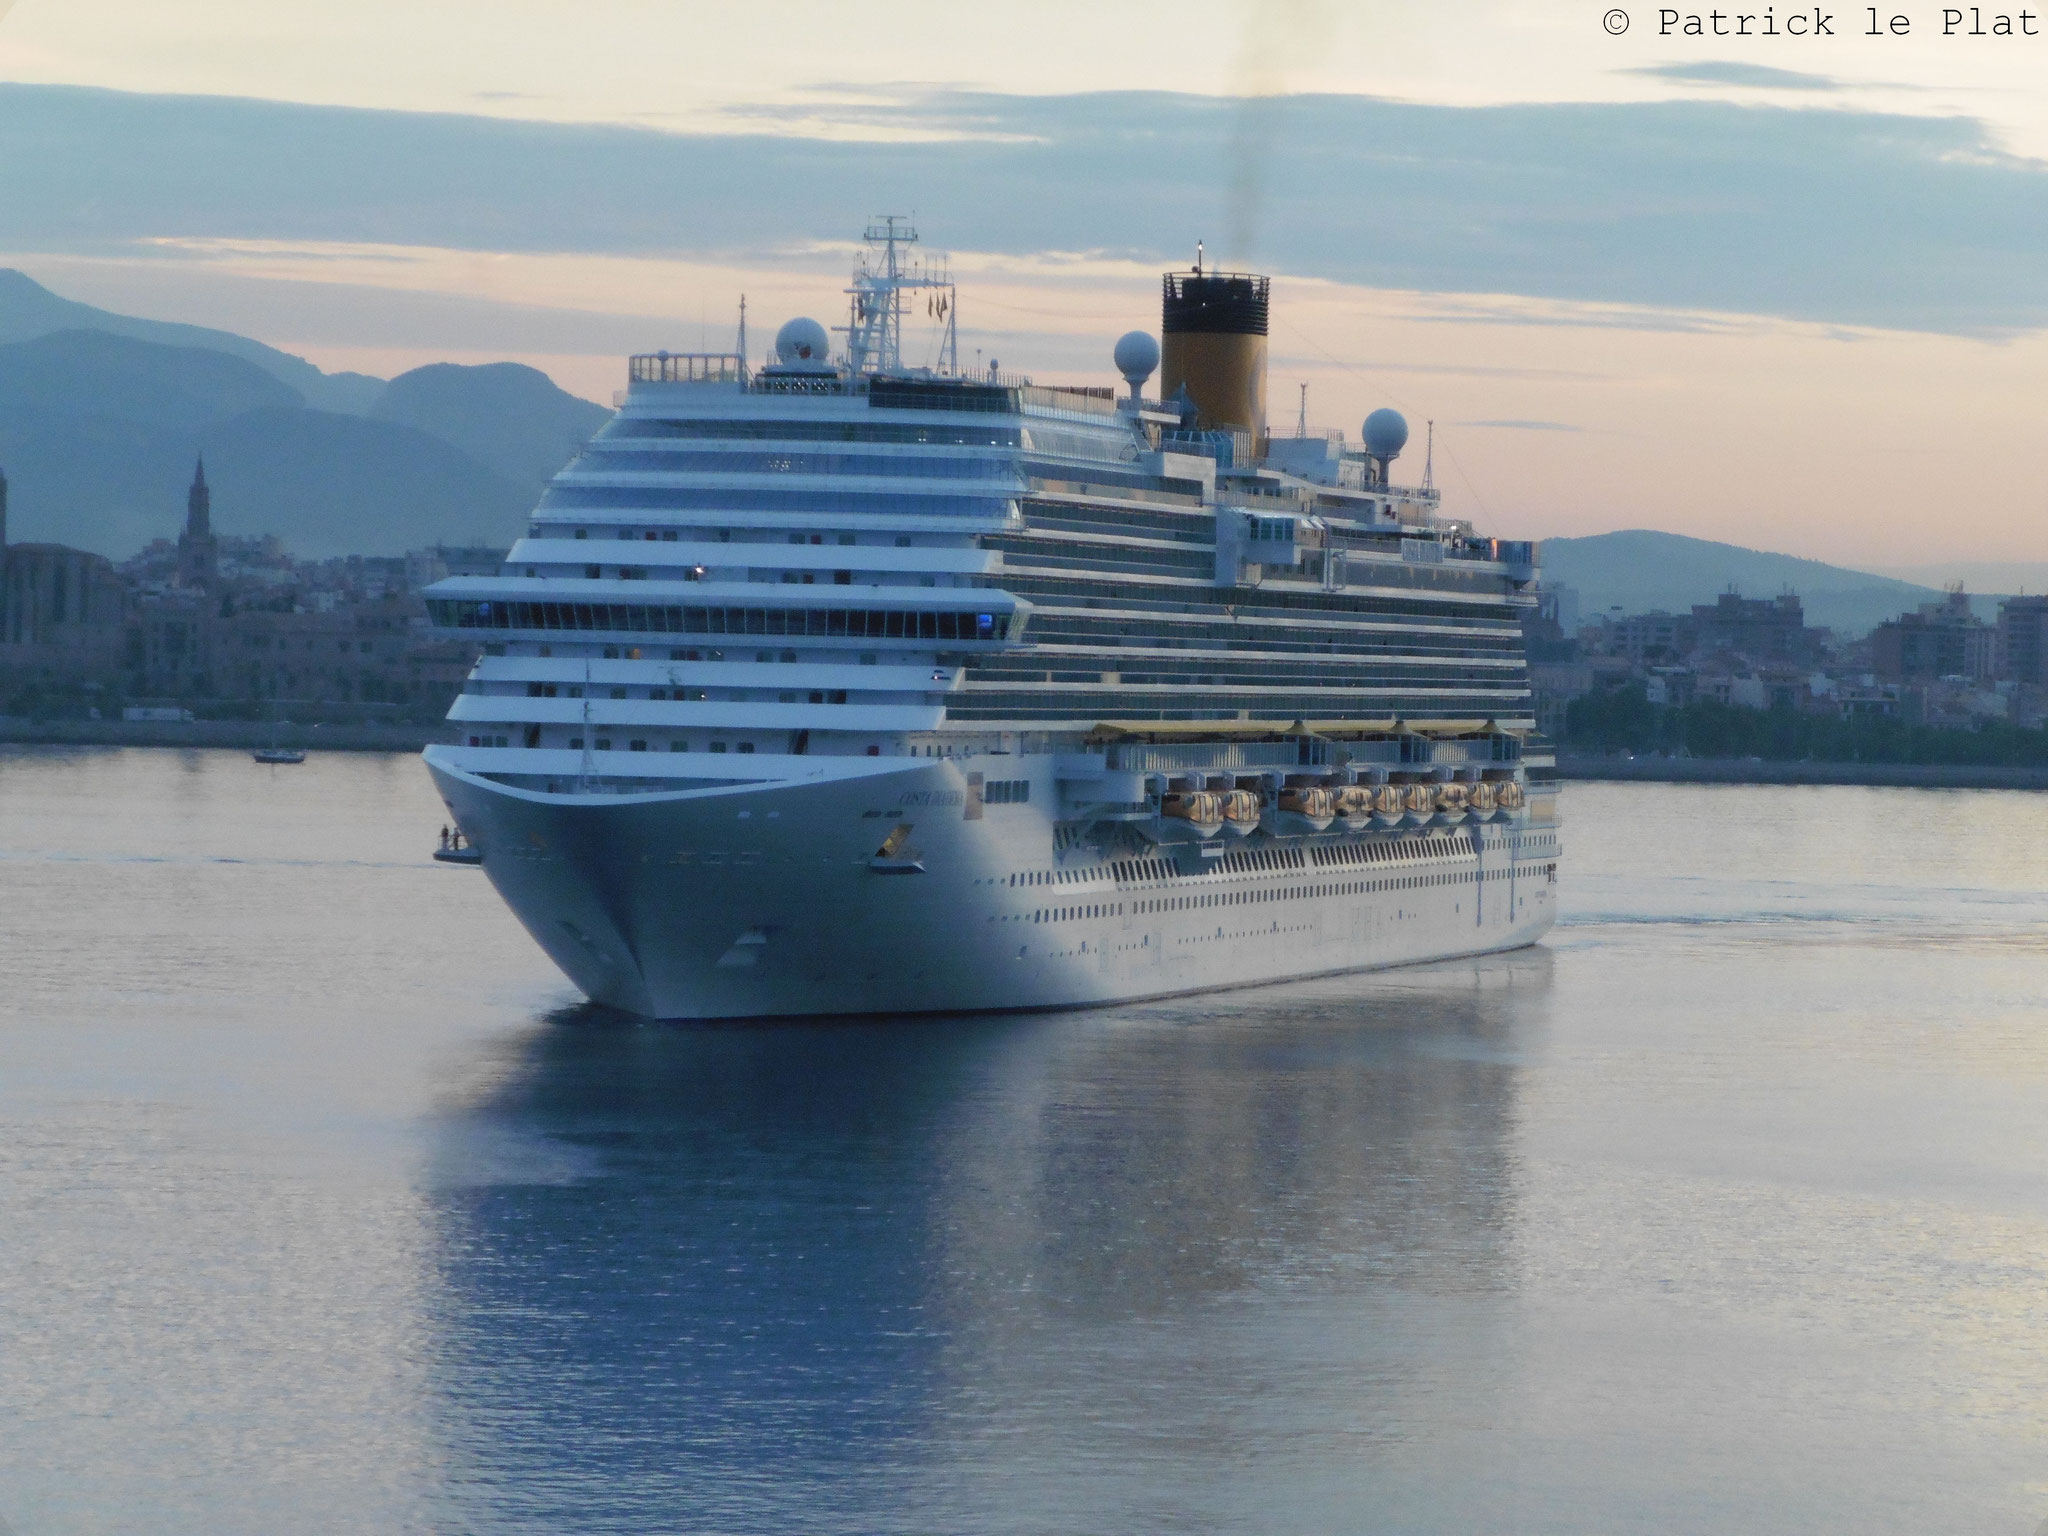 08. September 2015 in Palma de Mallorca (Spanien)